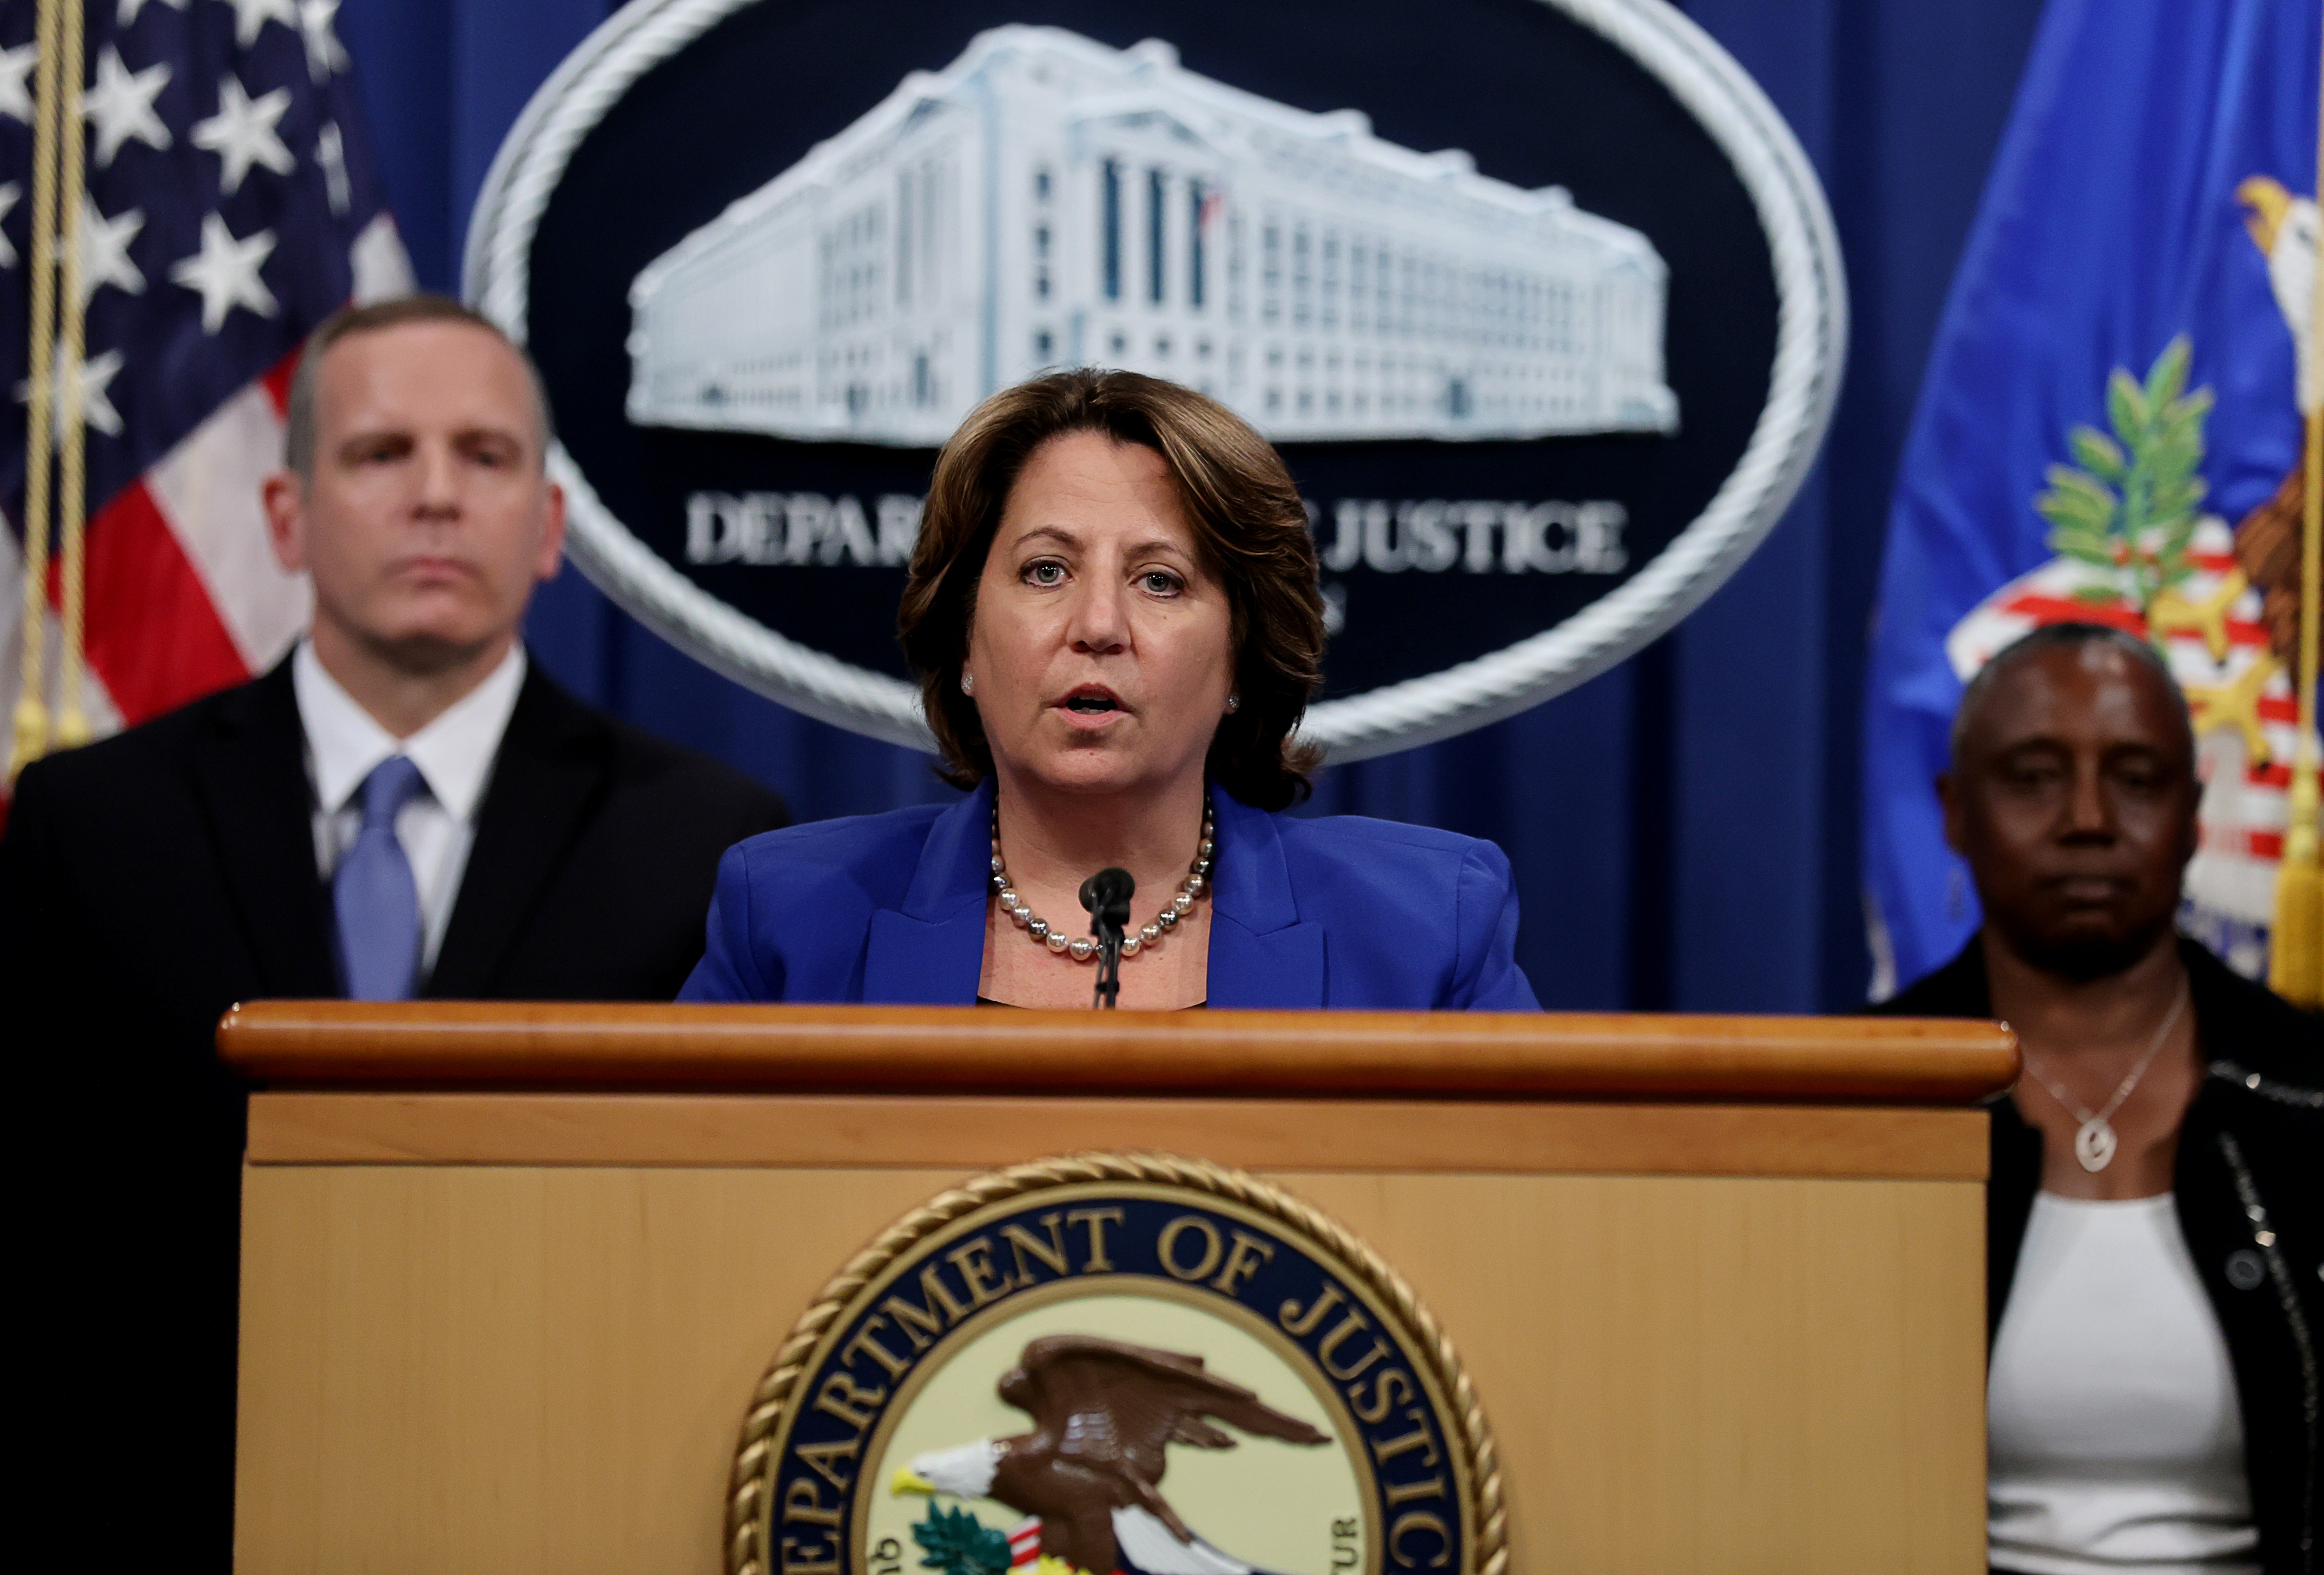 U.S. Justice Department Seizes .3M in Bitcoin Paid to Colonial Pipeline Hackers